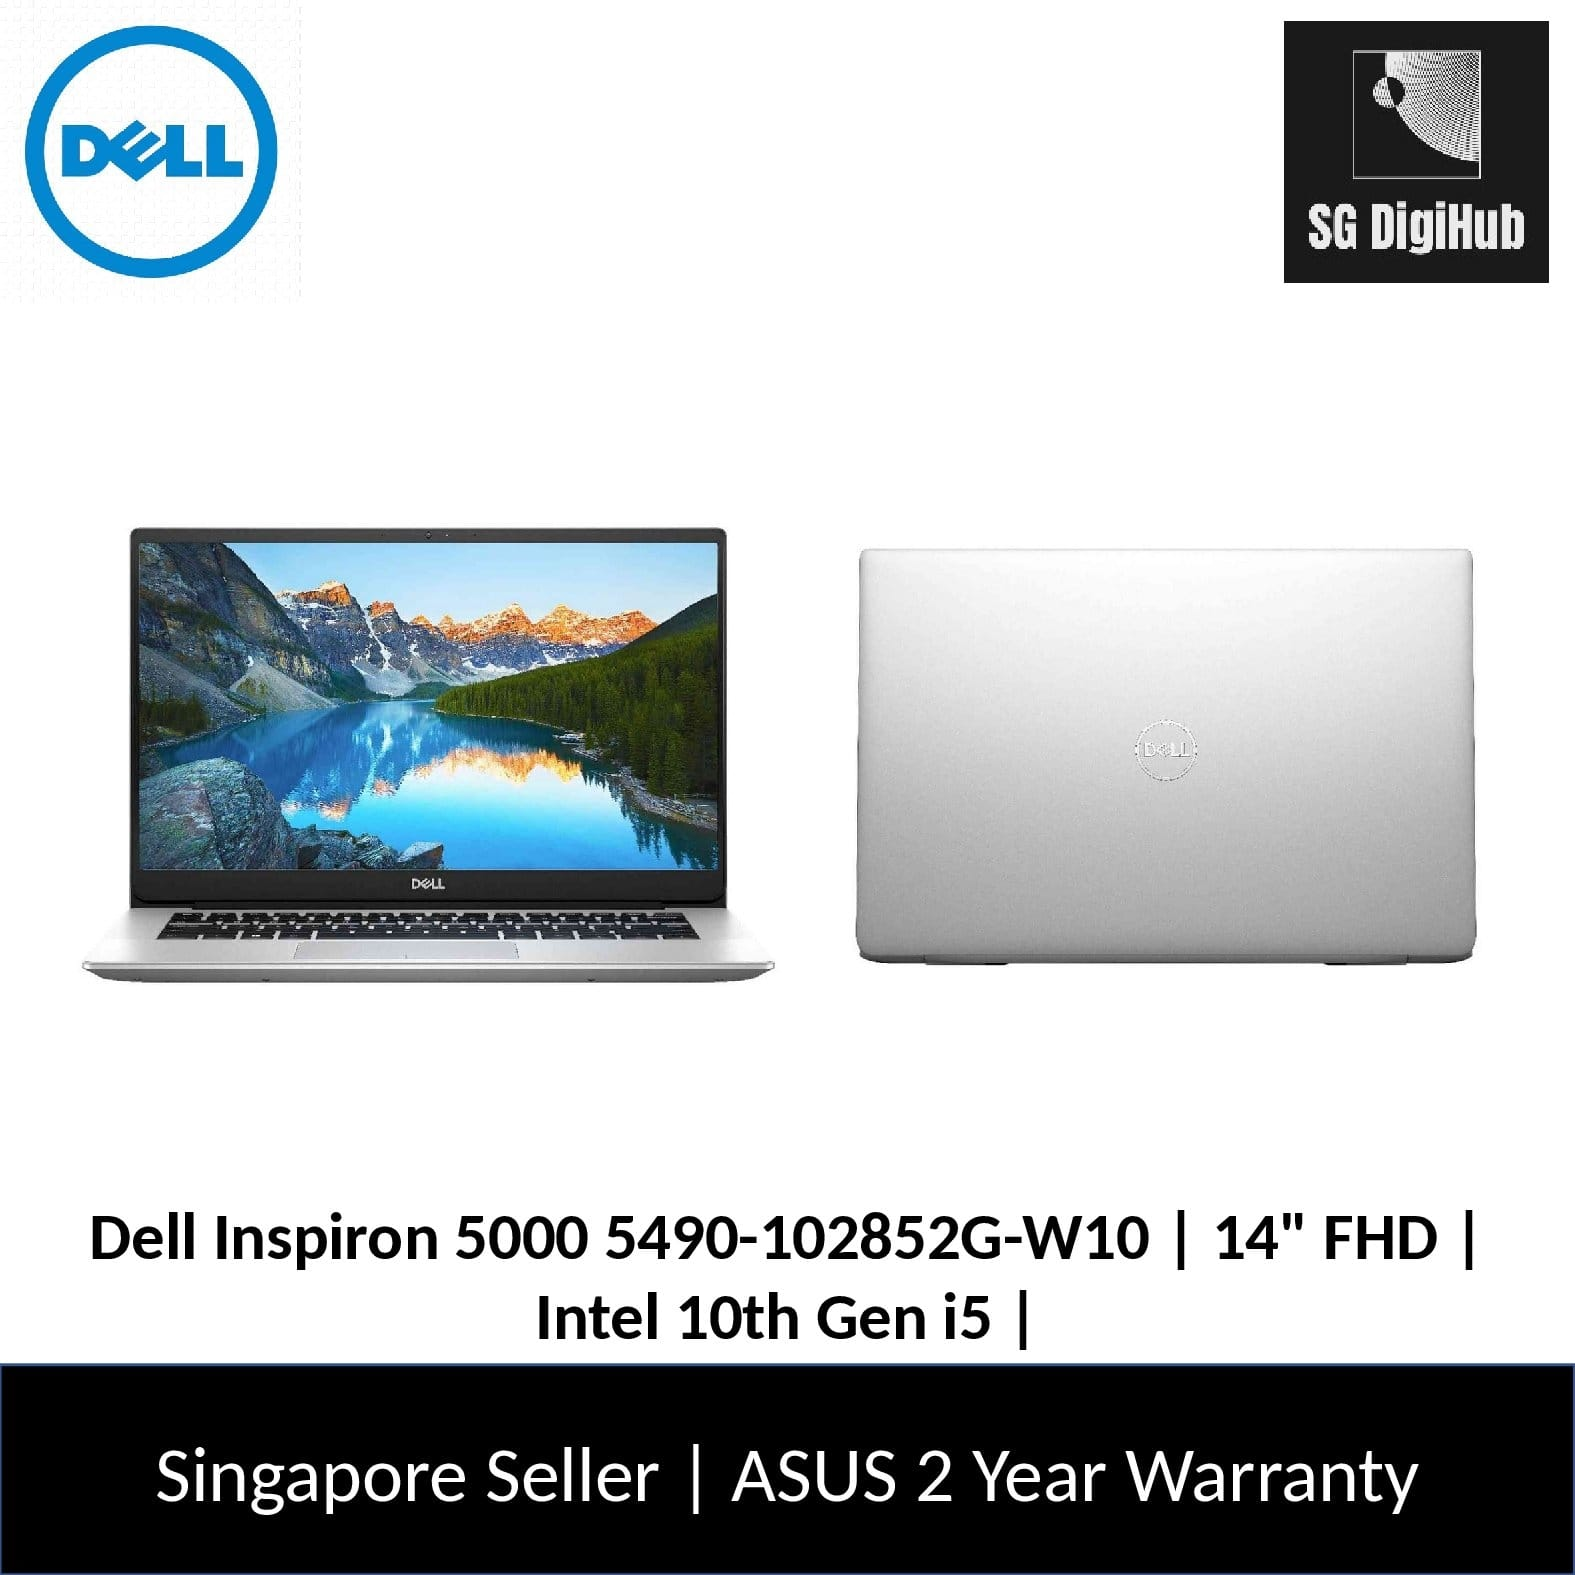 Dell Inspiron 5000 | 14 FHD | Intel 10th Gen i5 | 8GB RAM | 512 SSD | GeForce 2GB | 5490-102852G-W10